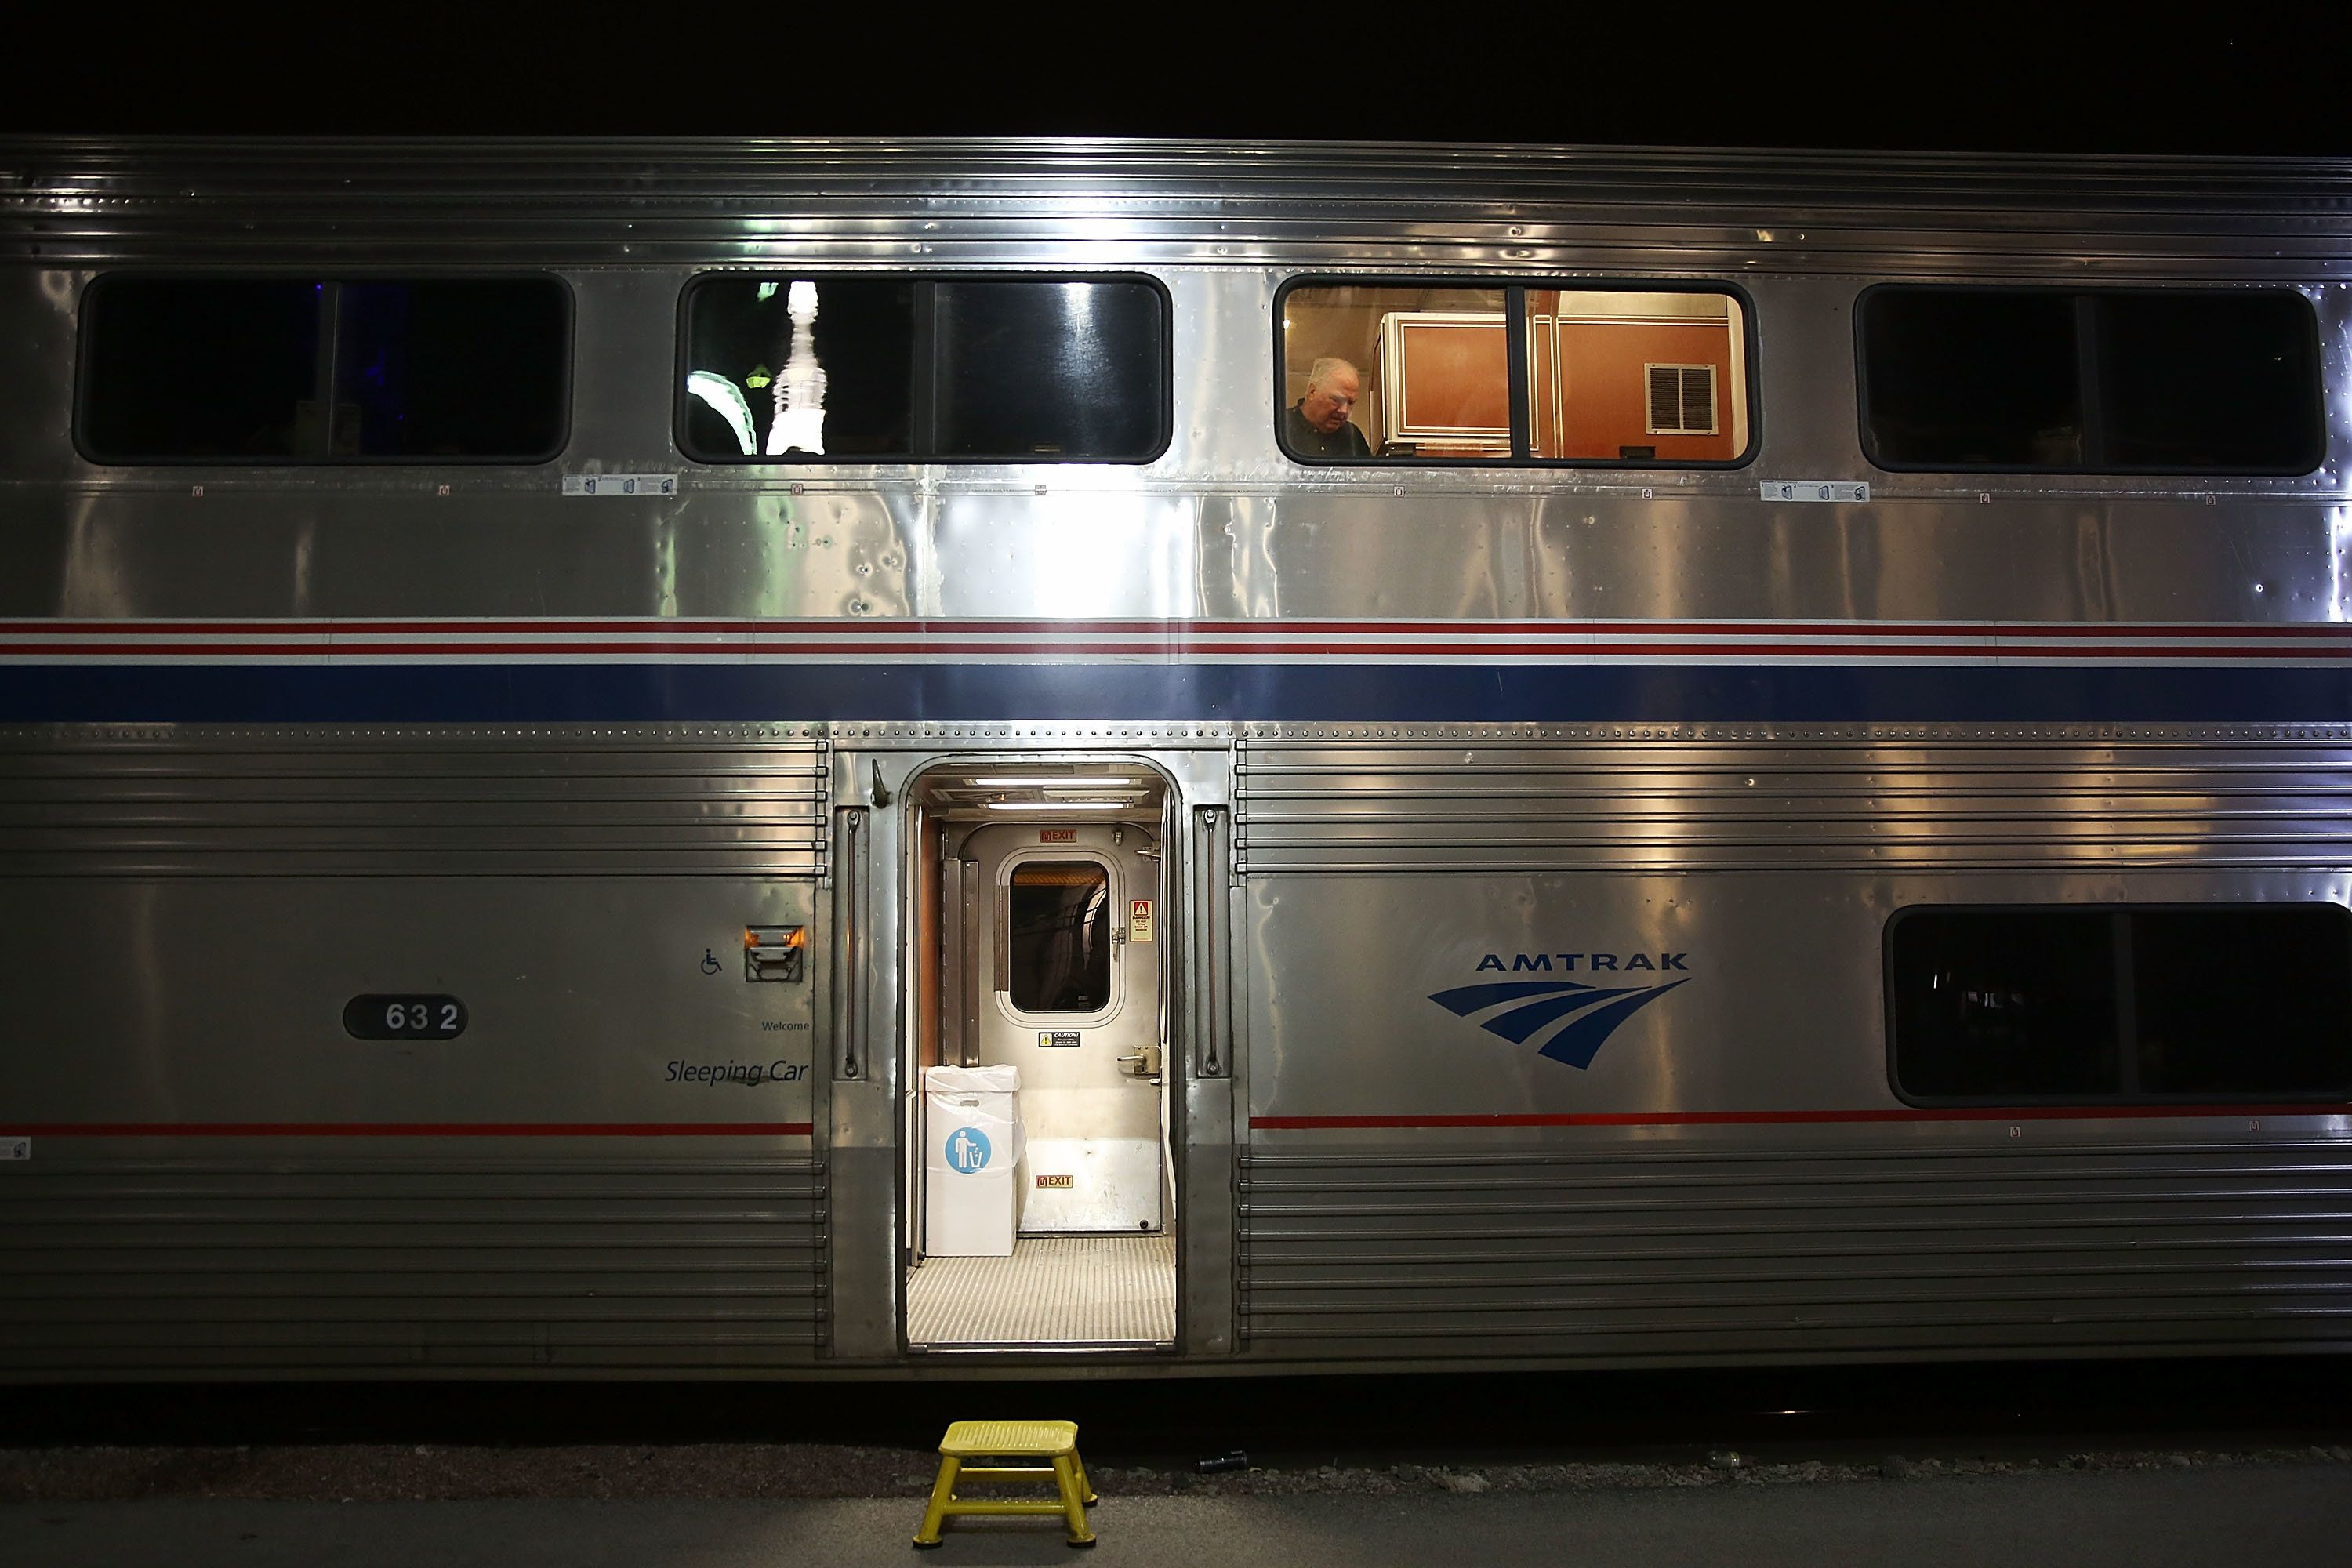 OMAHA, NE - MARCH 23:  Amtrak's California Zephyr stops at a station during its daily 2,438-mile trip to Emeryville/San Francisco from Chicago that takes roughly 52 hours on March 23, 2017 in Omaha, United States.  President Trump has proposed a national budget that would terminate federal support for Amtrak's long distance train services, which would affect the California Zephyr and other long distance rail lines run by Amtrak.  (Photo by Joe Raedle/Getty Images)